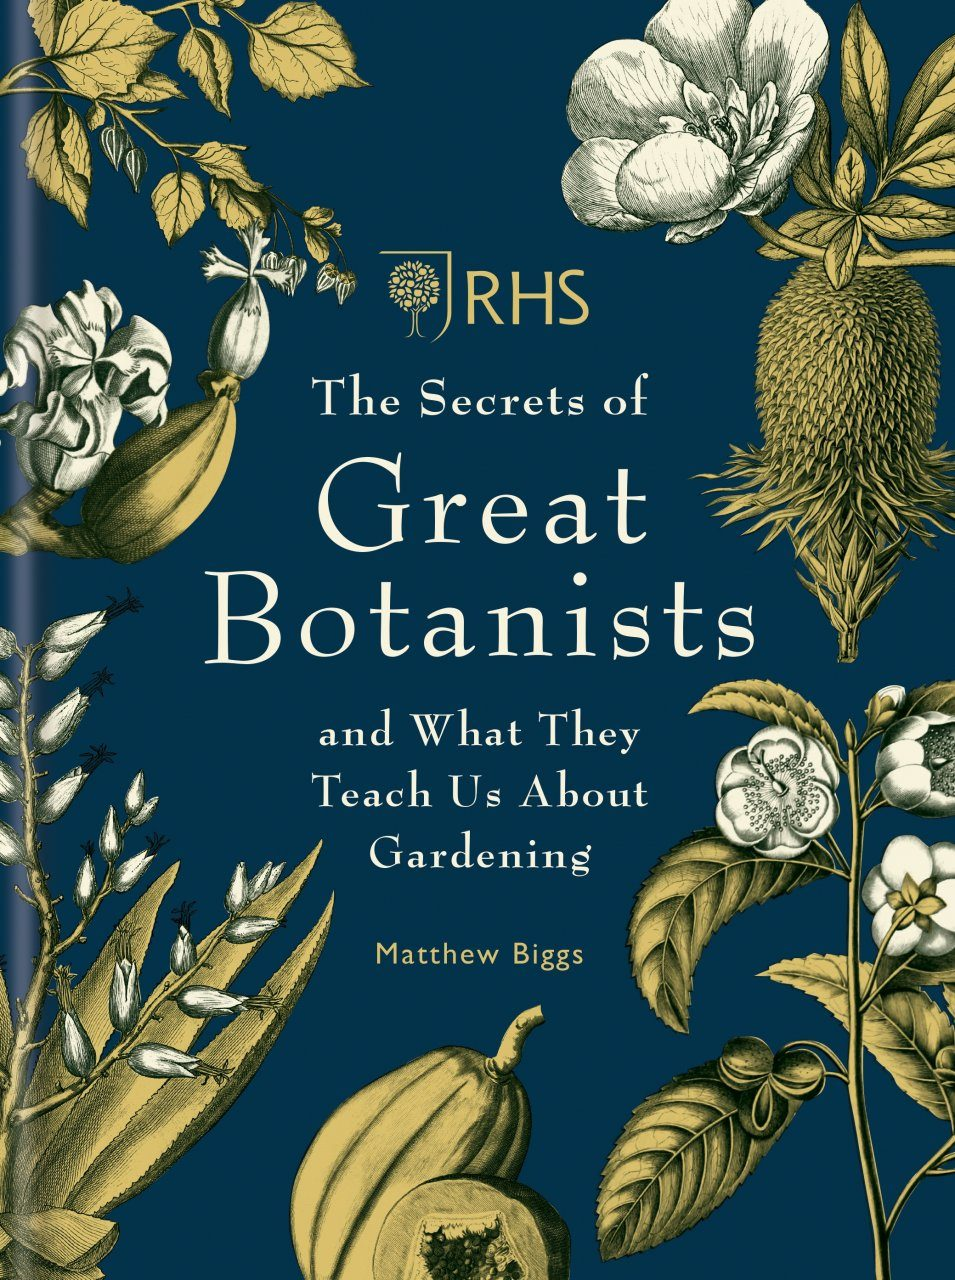 RHS The Secrets of the Great Botanists